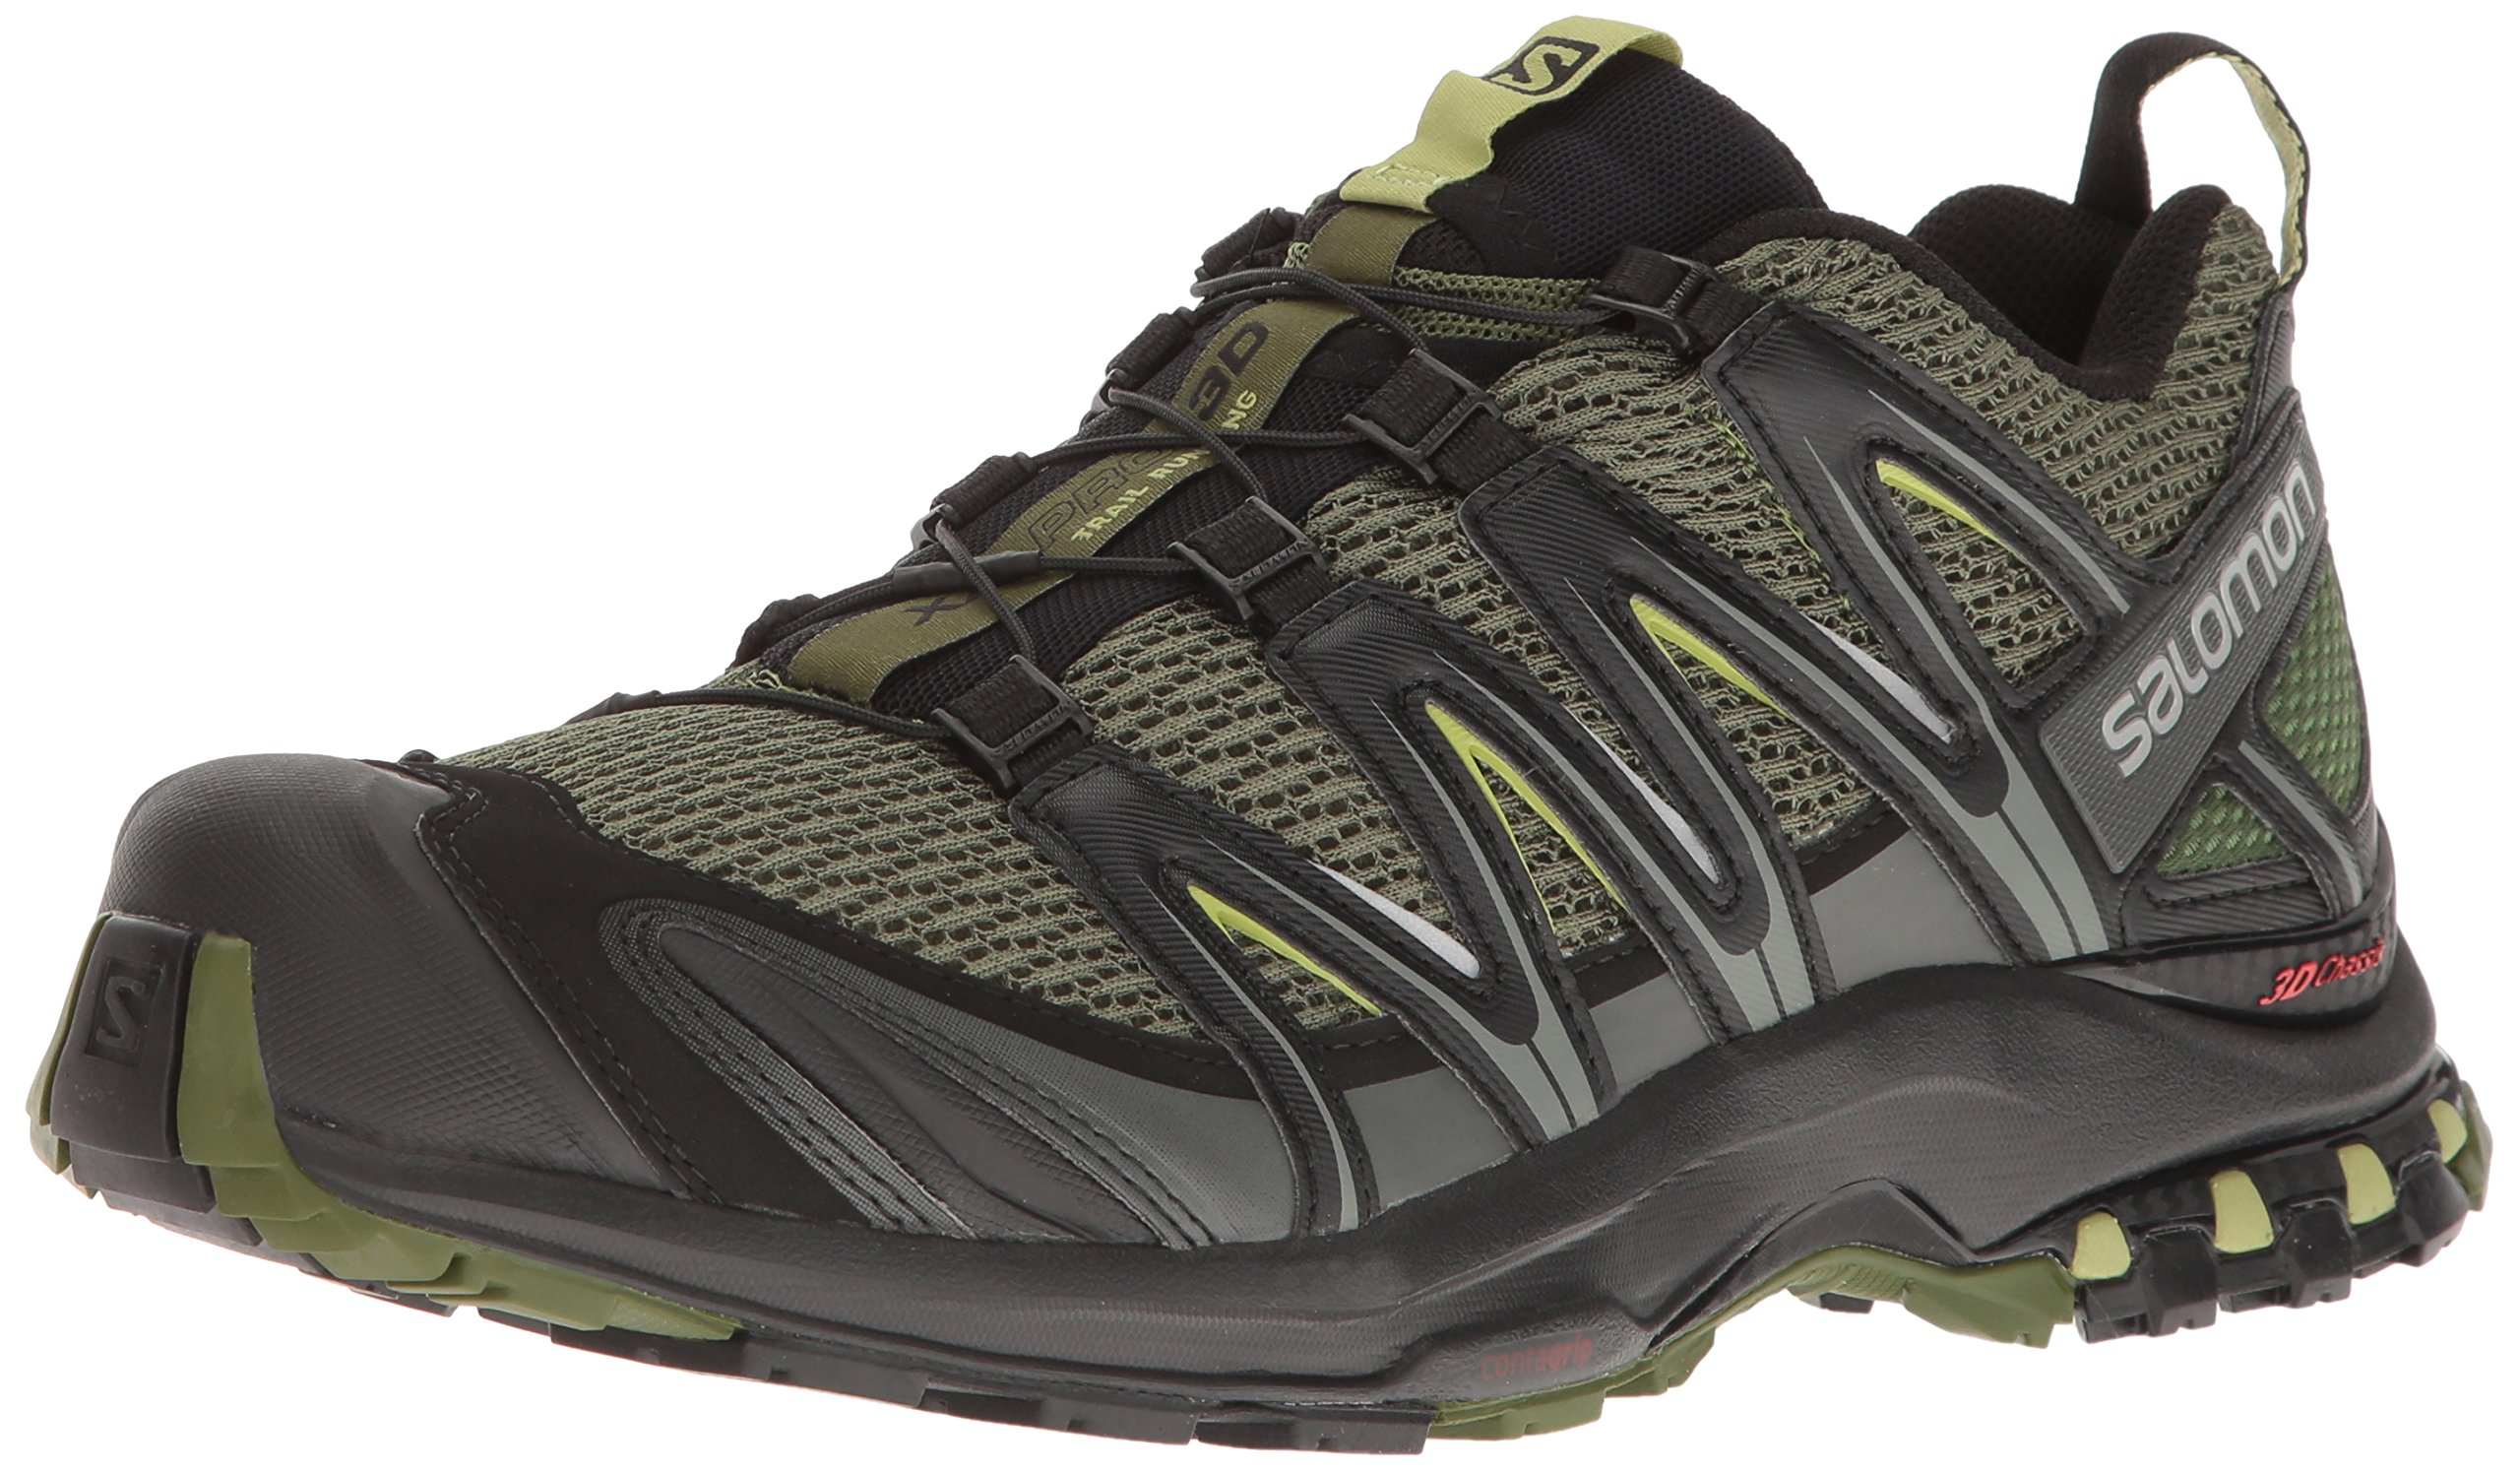 Salomon Men's XA PRO 3D Trail Runner, Chive, 7 M US by SALOMON